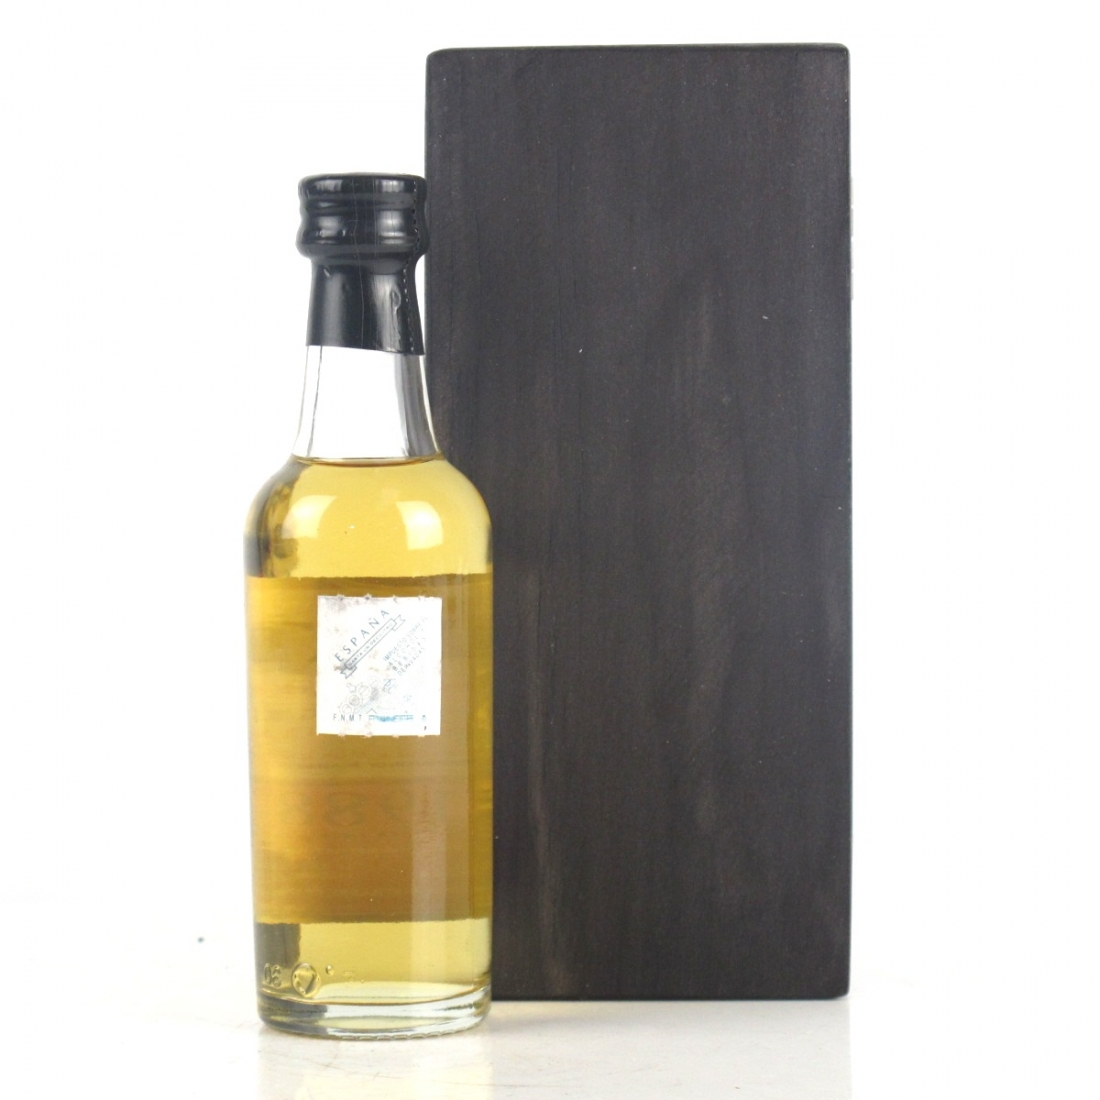 Tomatin 1988 25 Year Old Batch #1 Miniature 5cl / CECBL 4th Anniversary